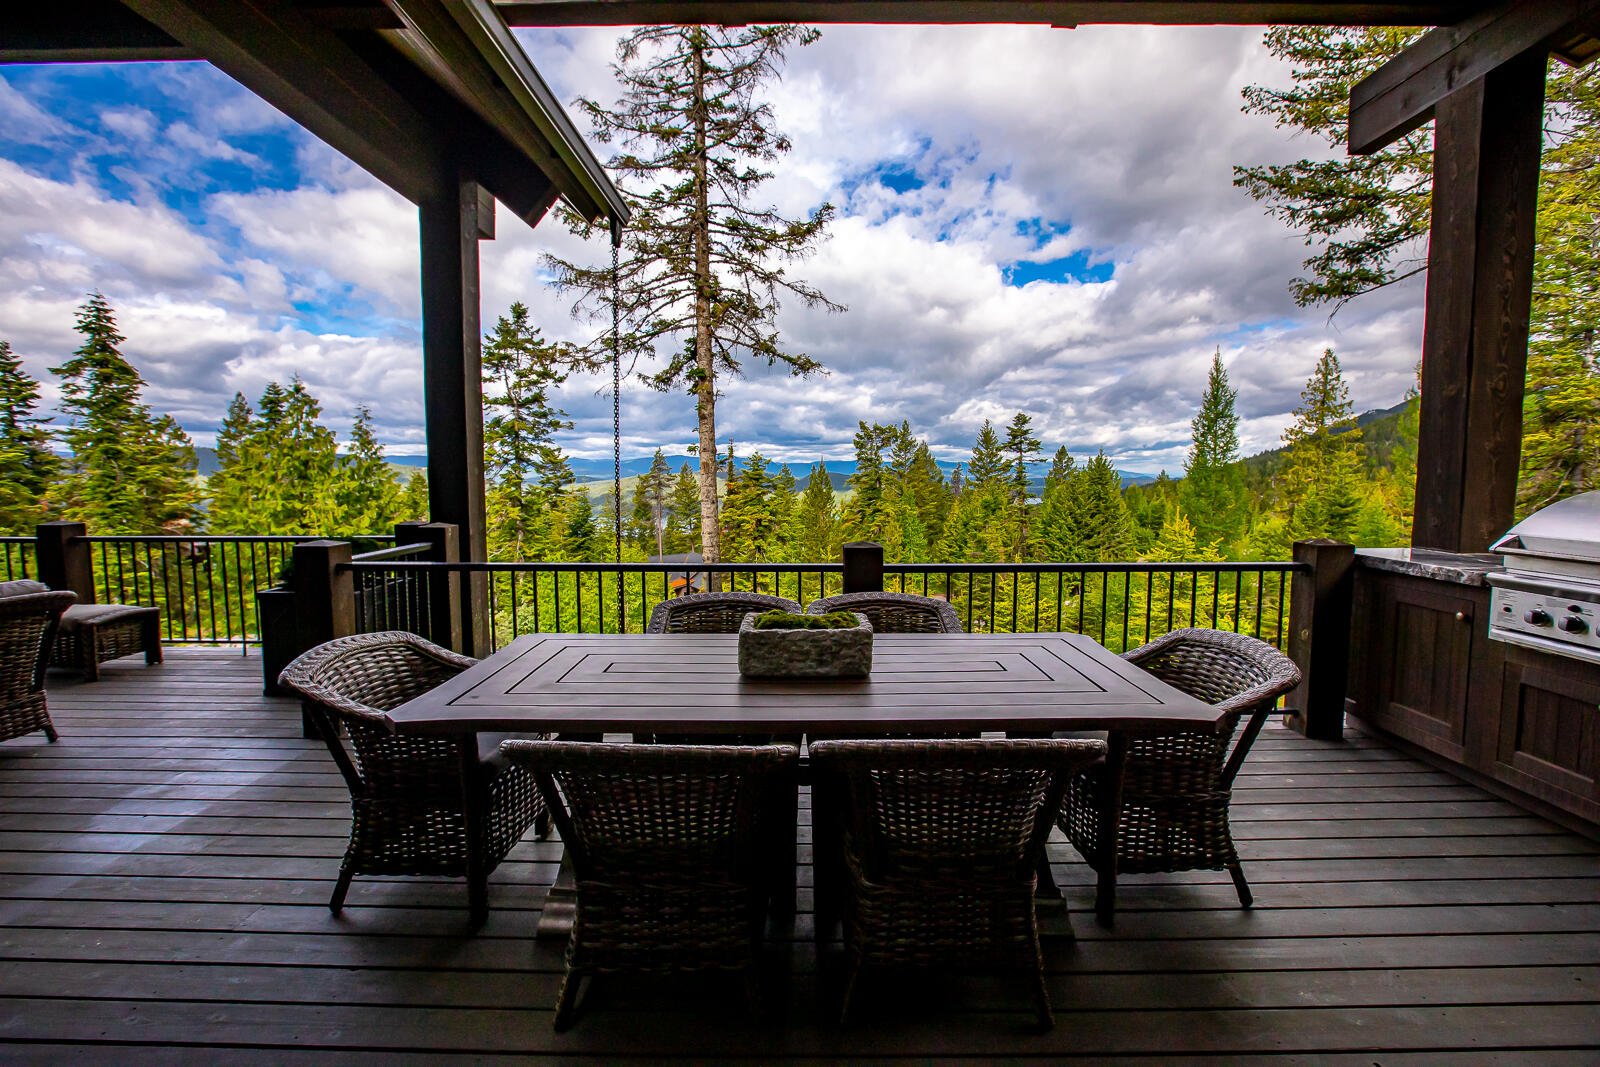 Deck Dining View